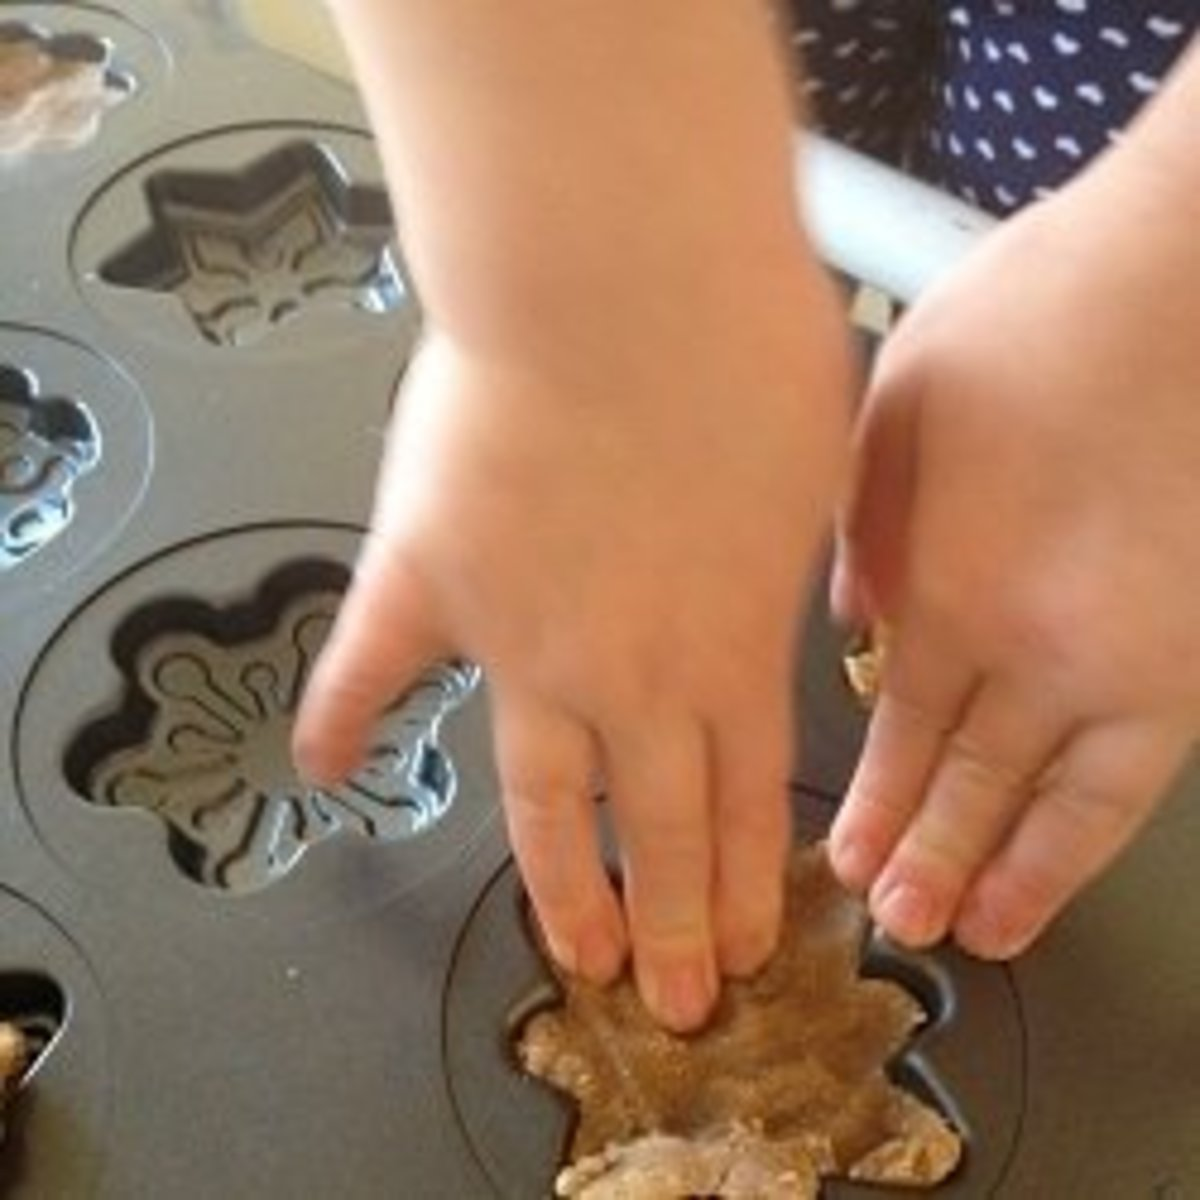 Our four-year-old granddaughter pressing dough snowflakes into the cookie molds